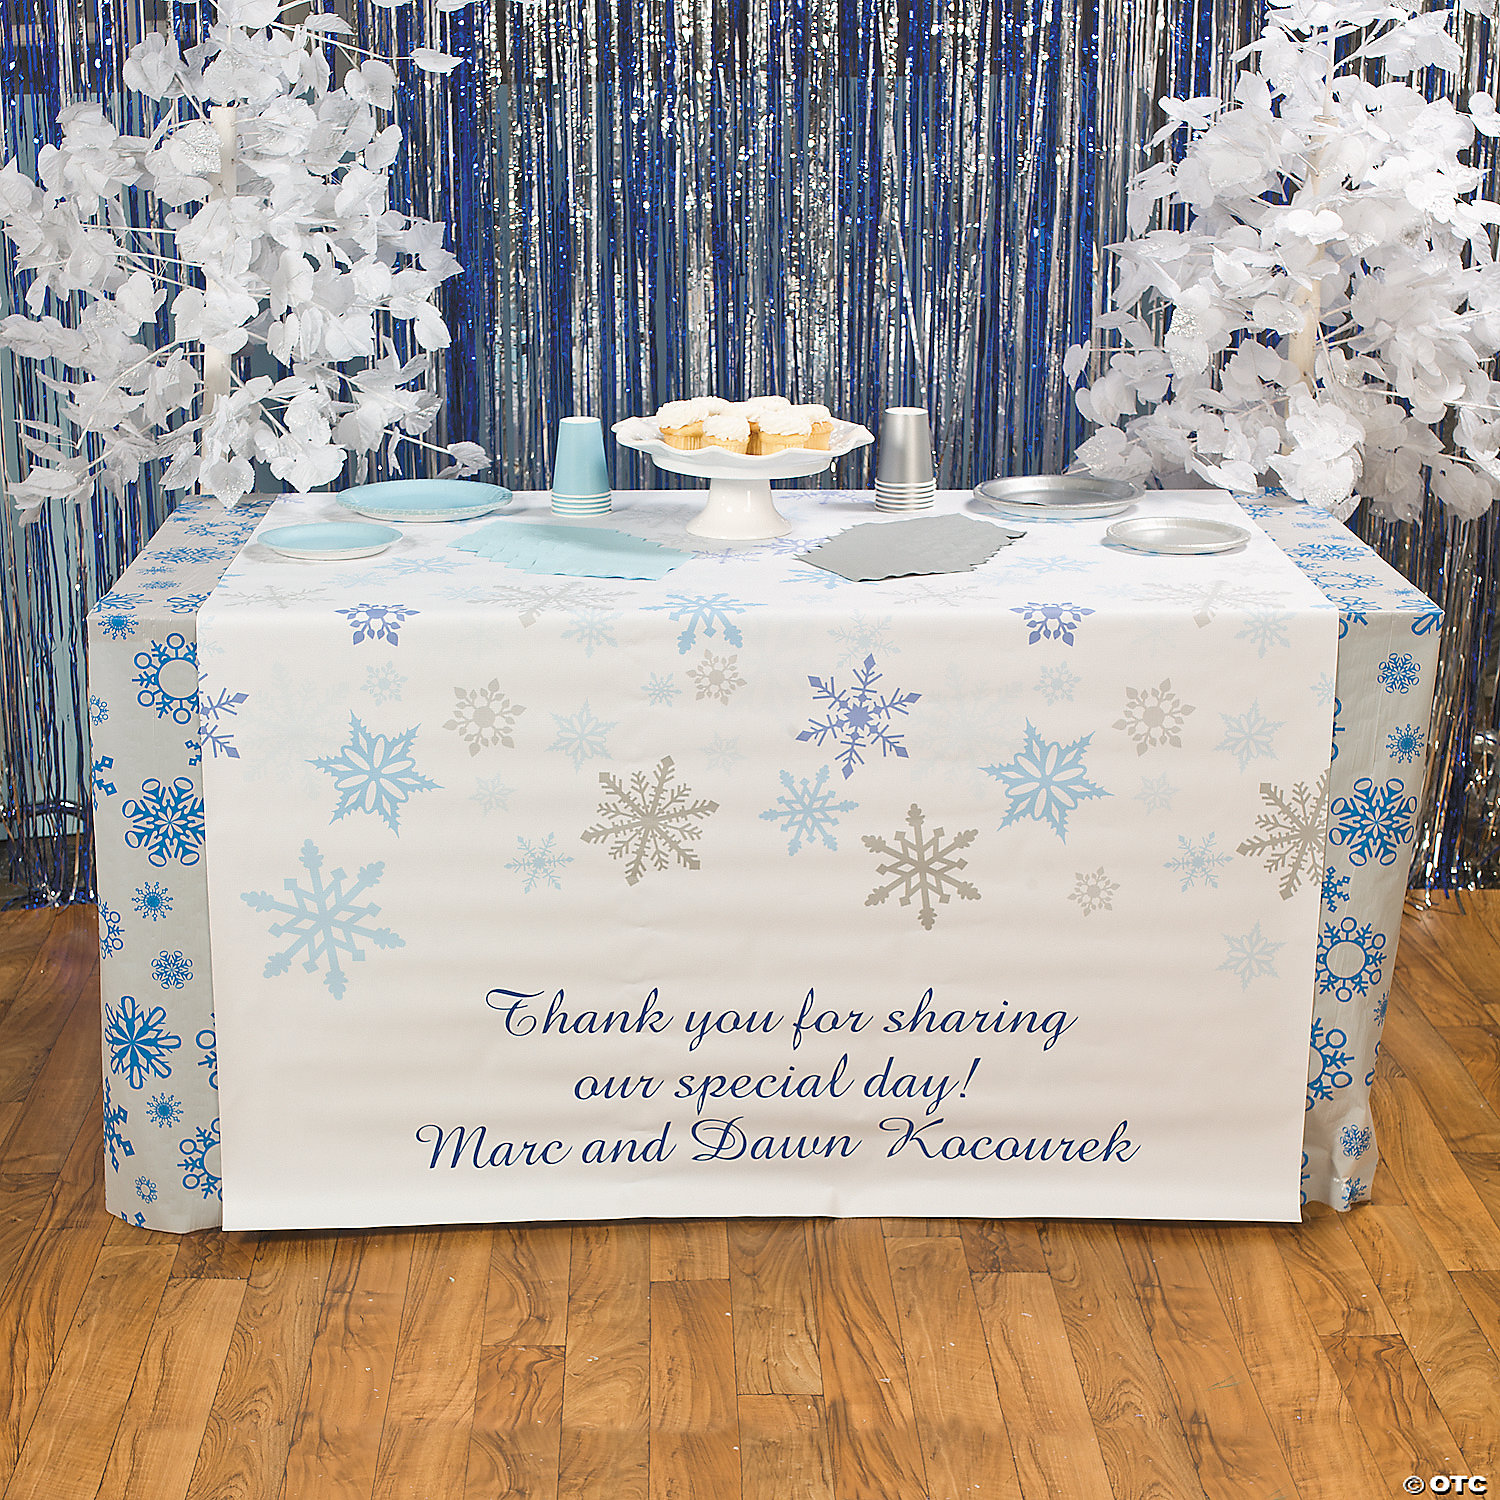 Personalized Winter Wonderland Table Runner Discontinued